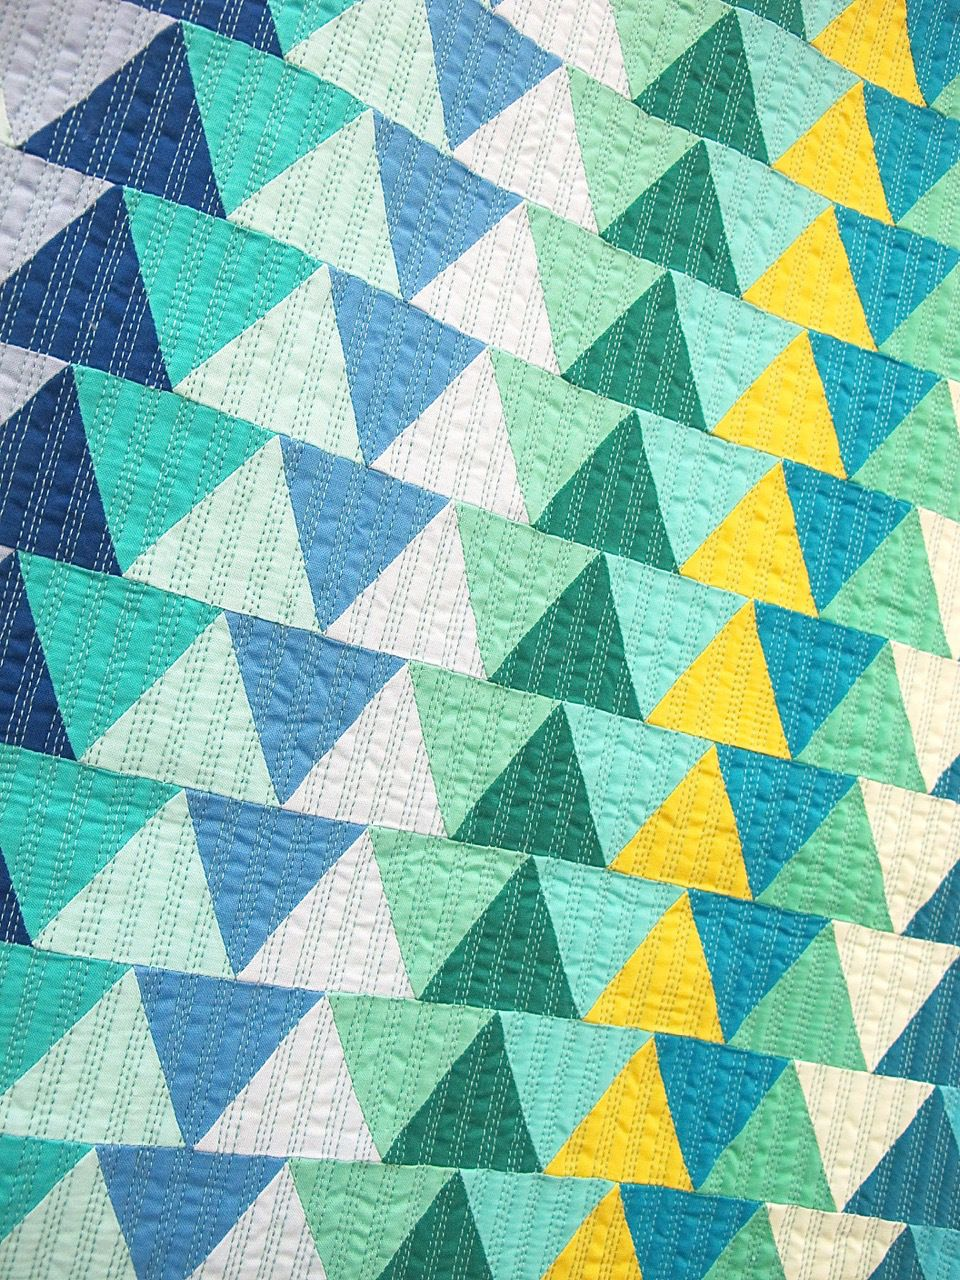 Nestled Together by AnnMarie Cowley, adaptation of a quilt by Joyce Dean Gieszler